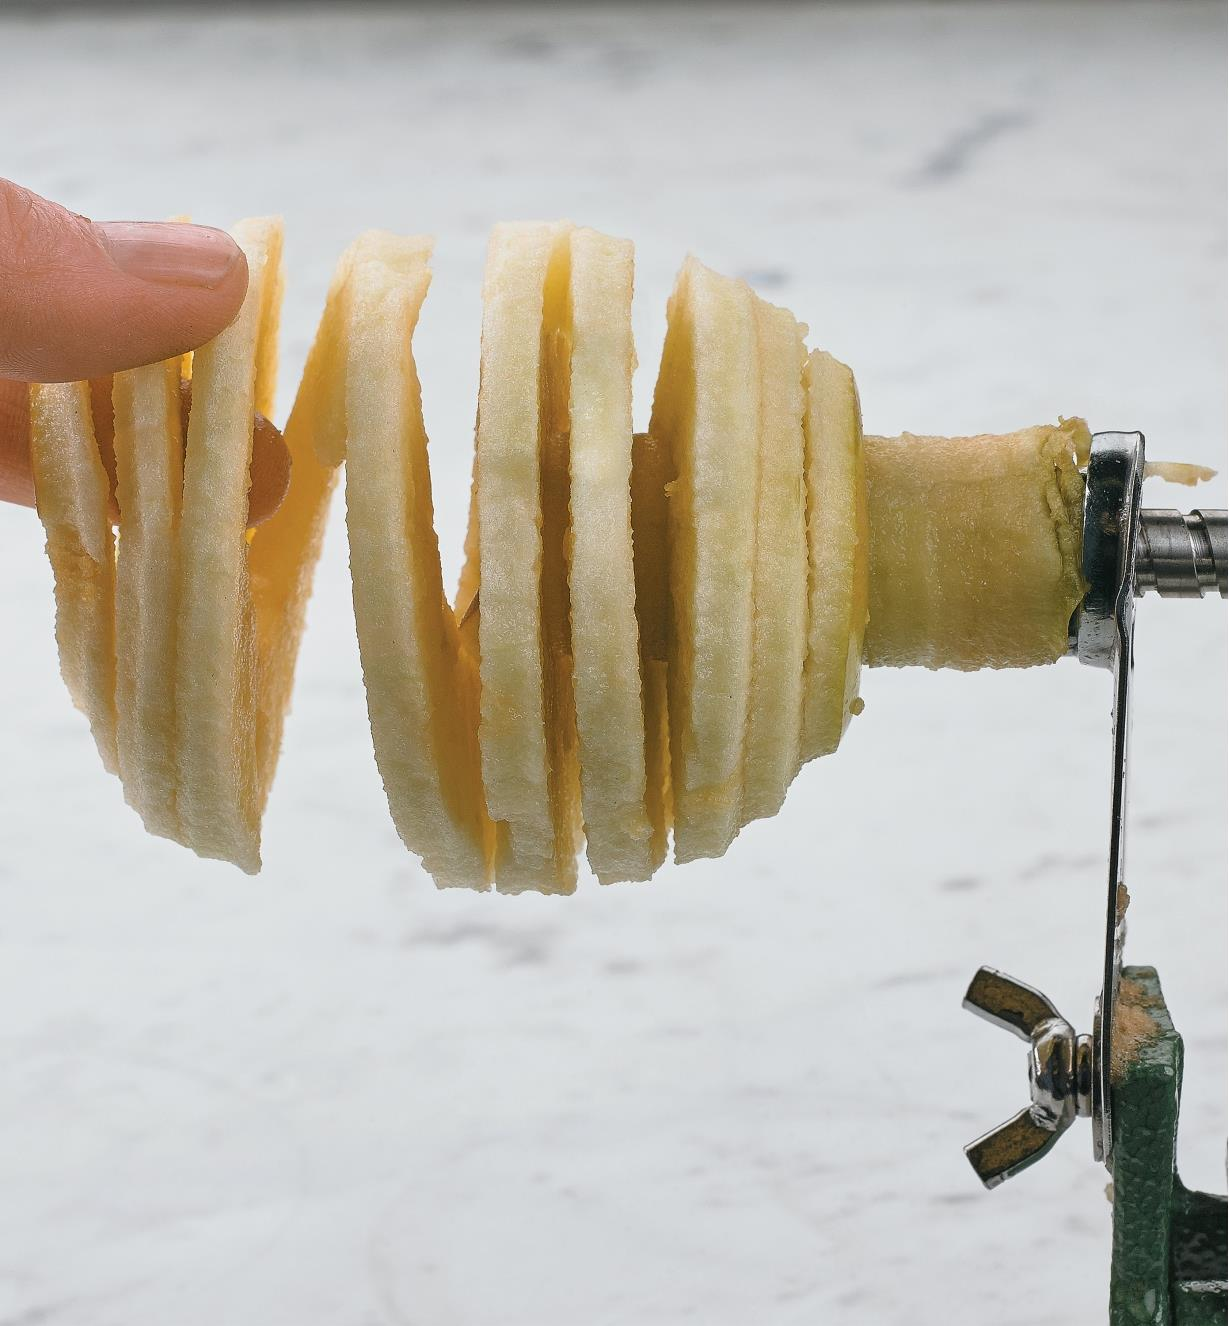 Removing a peeled, sliced and cored apple from the apple peeler